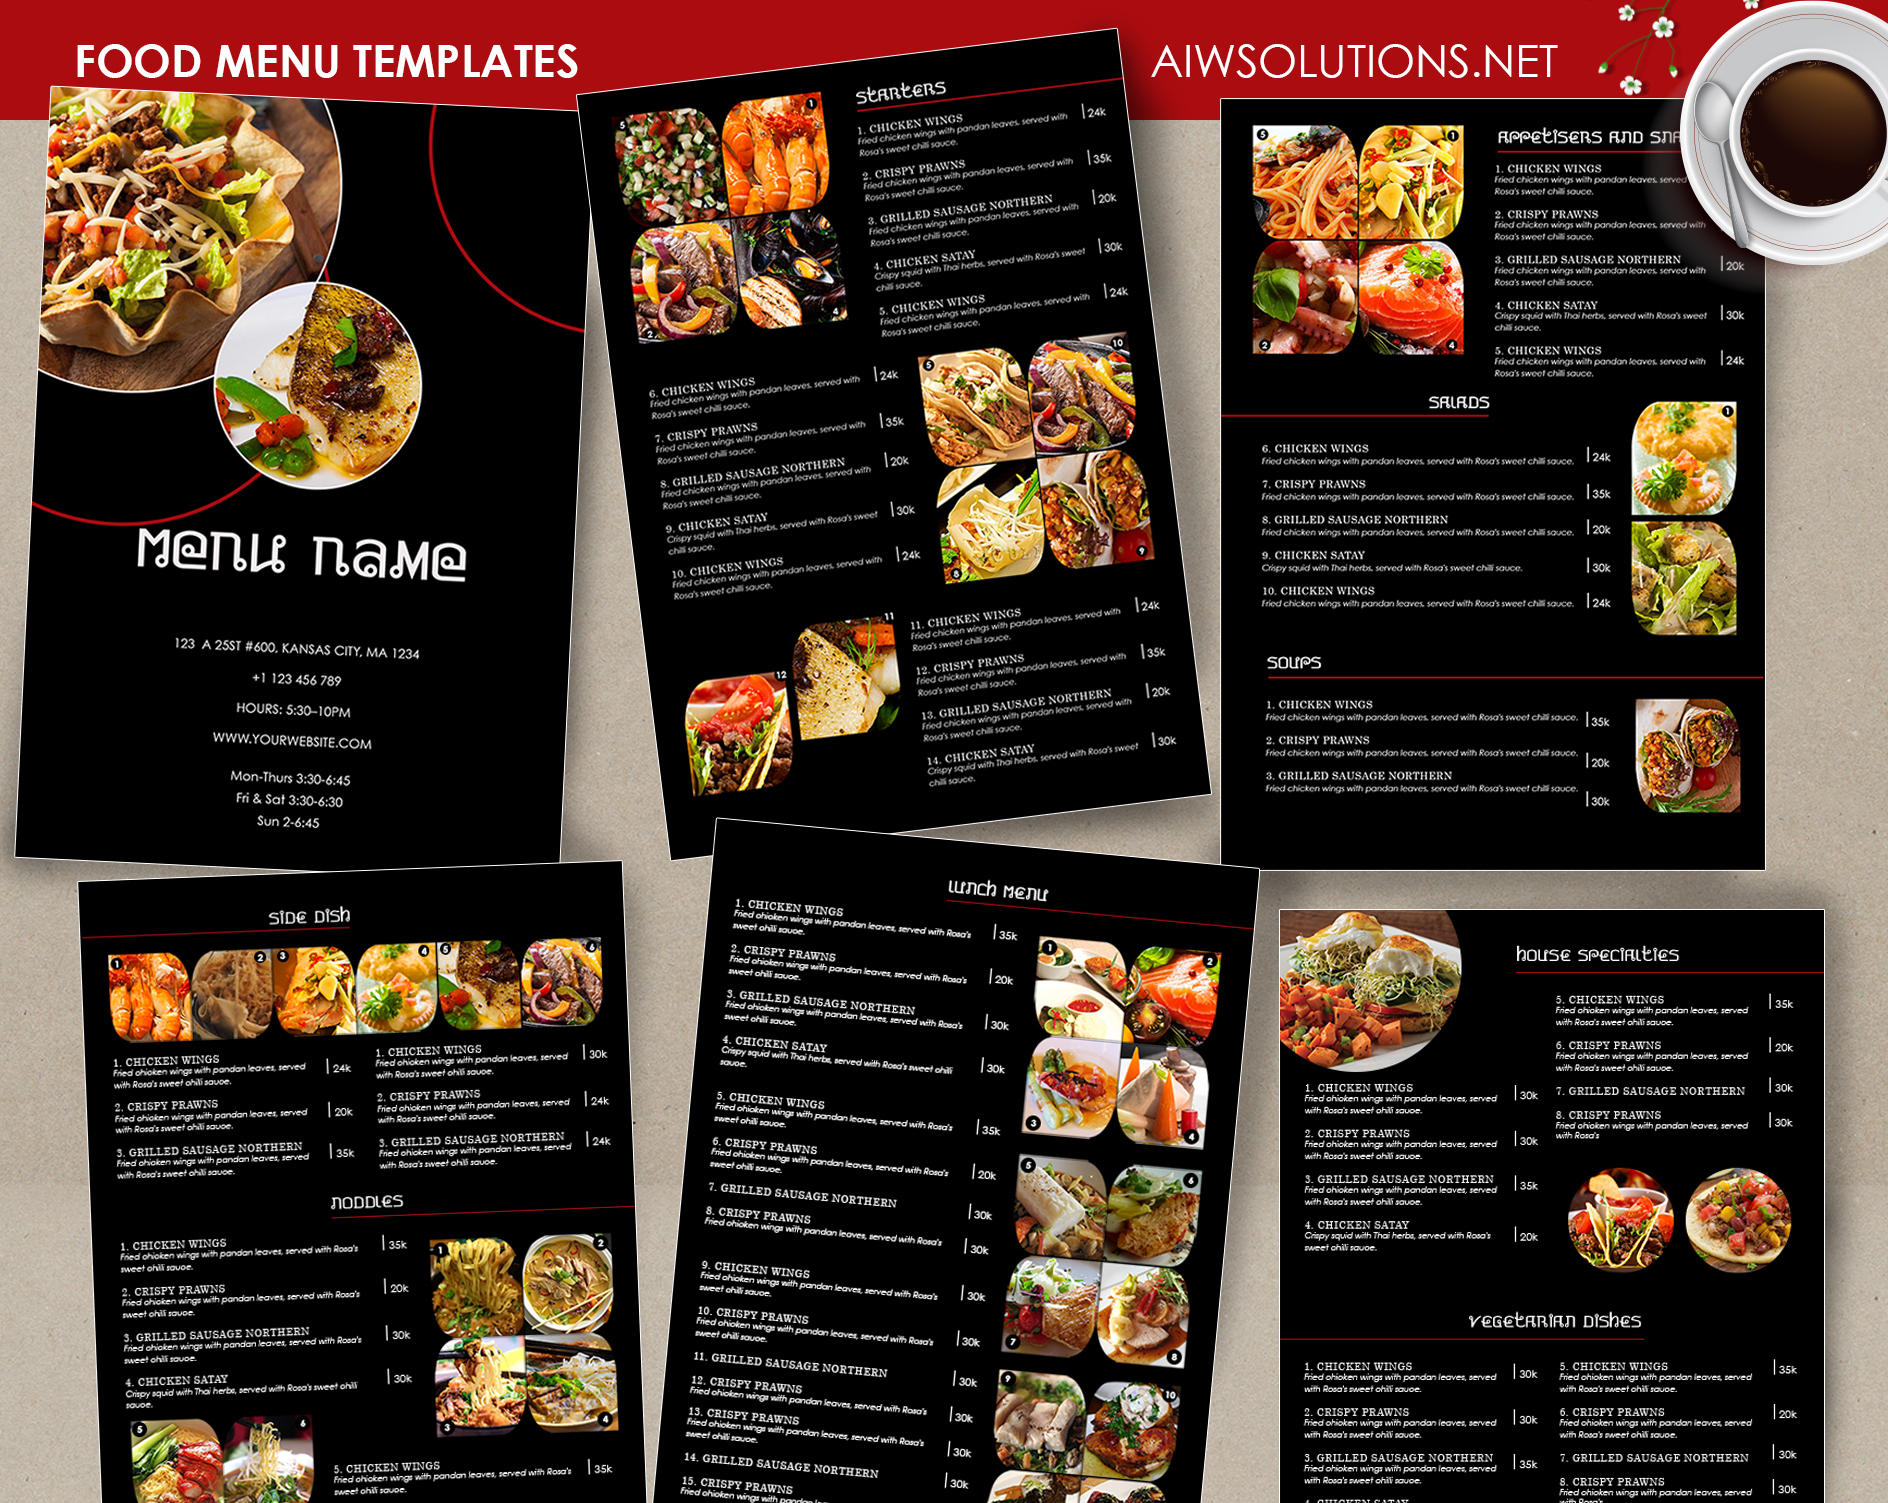 Design Templates Menu Wedding Food Bar Template Restaurant Drink Graphic